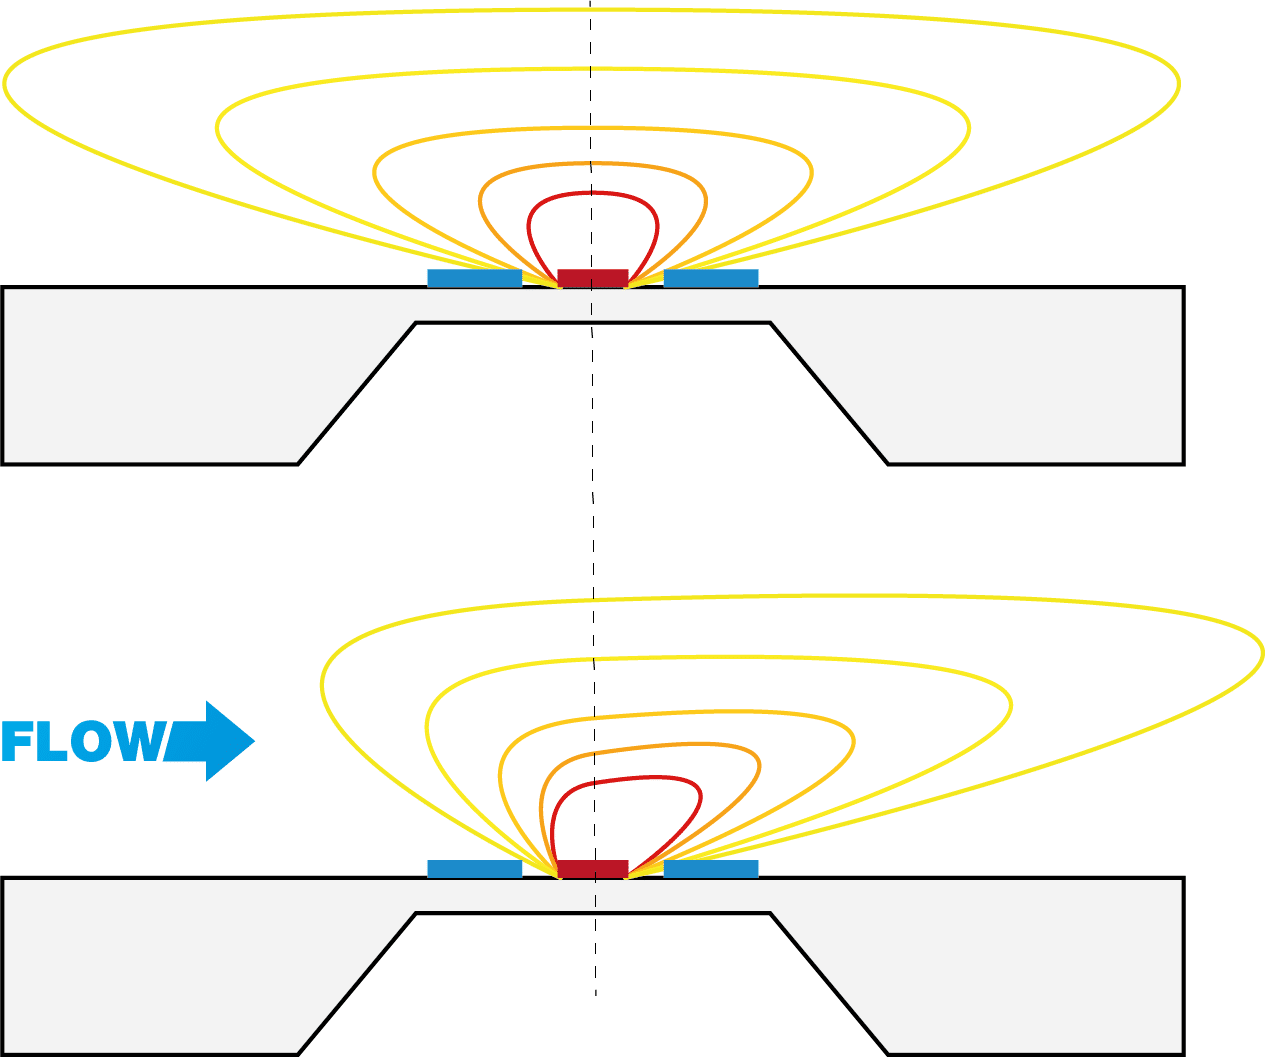 Measurement and Control of Low Gas Flow